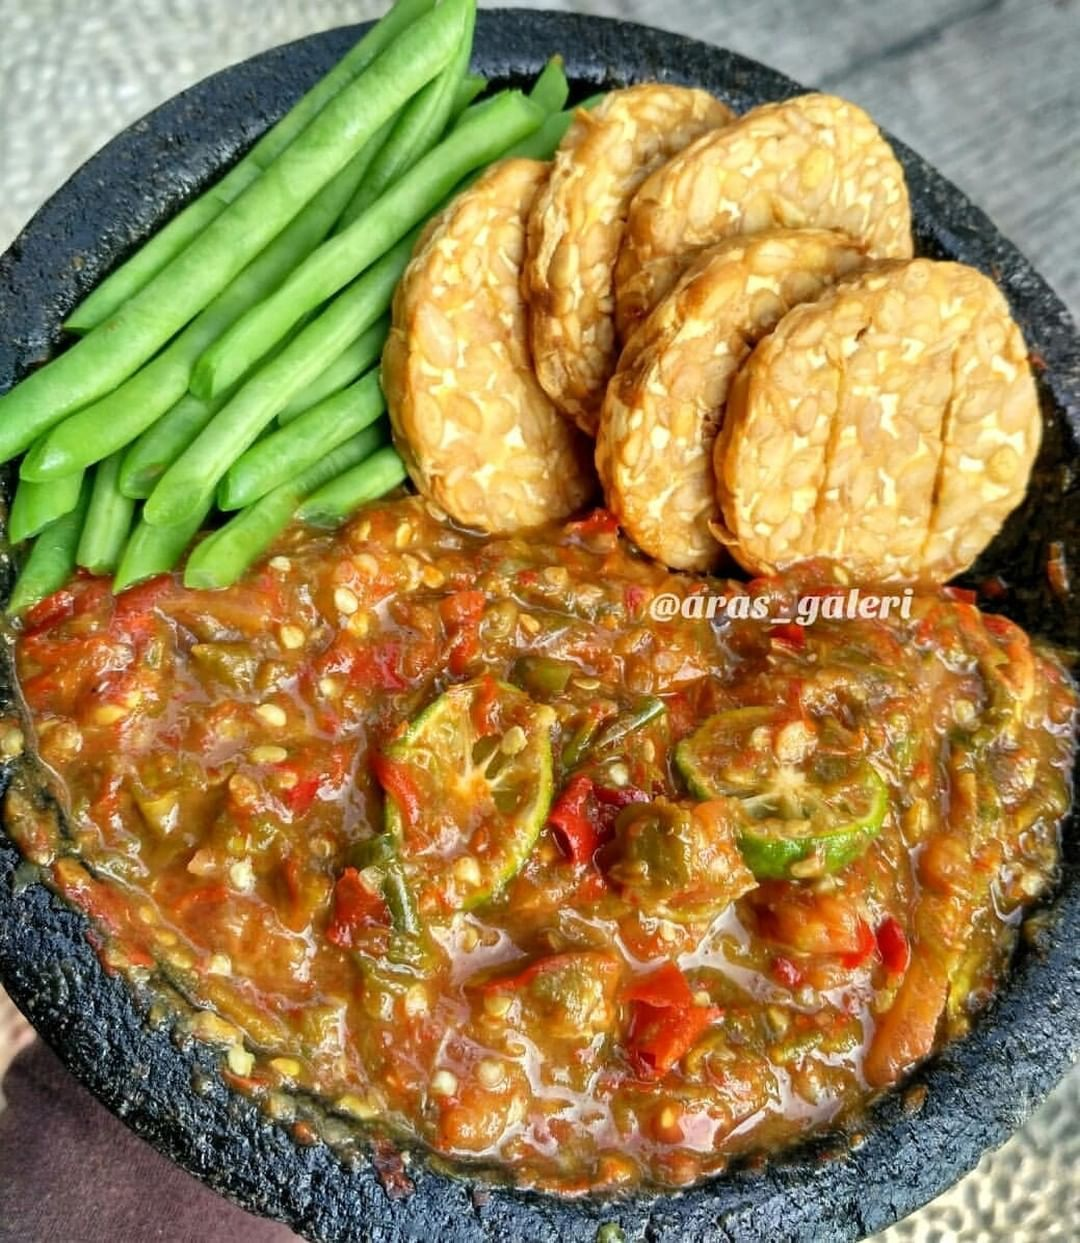 Sambel Terasi Credit By Aras Galeri Sambal Recipe Cooking Ingredients Diy Food Recipes